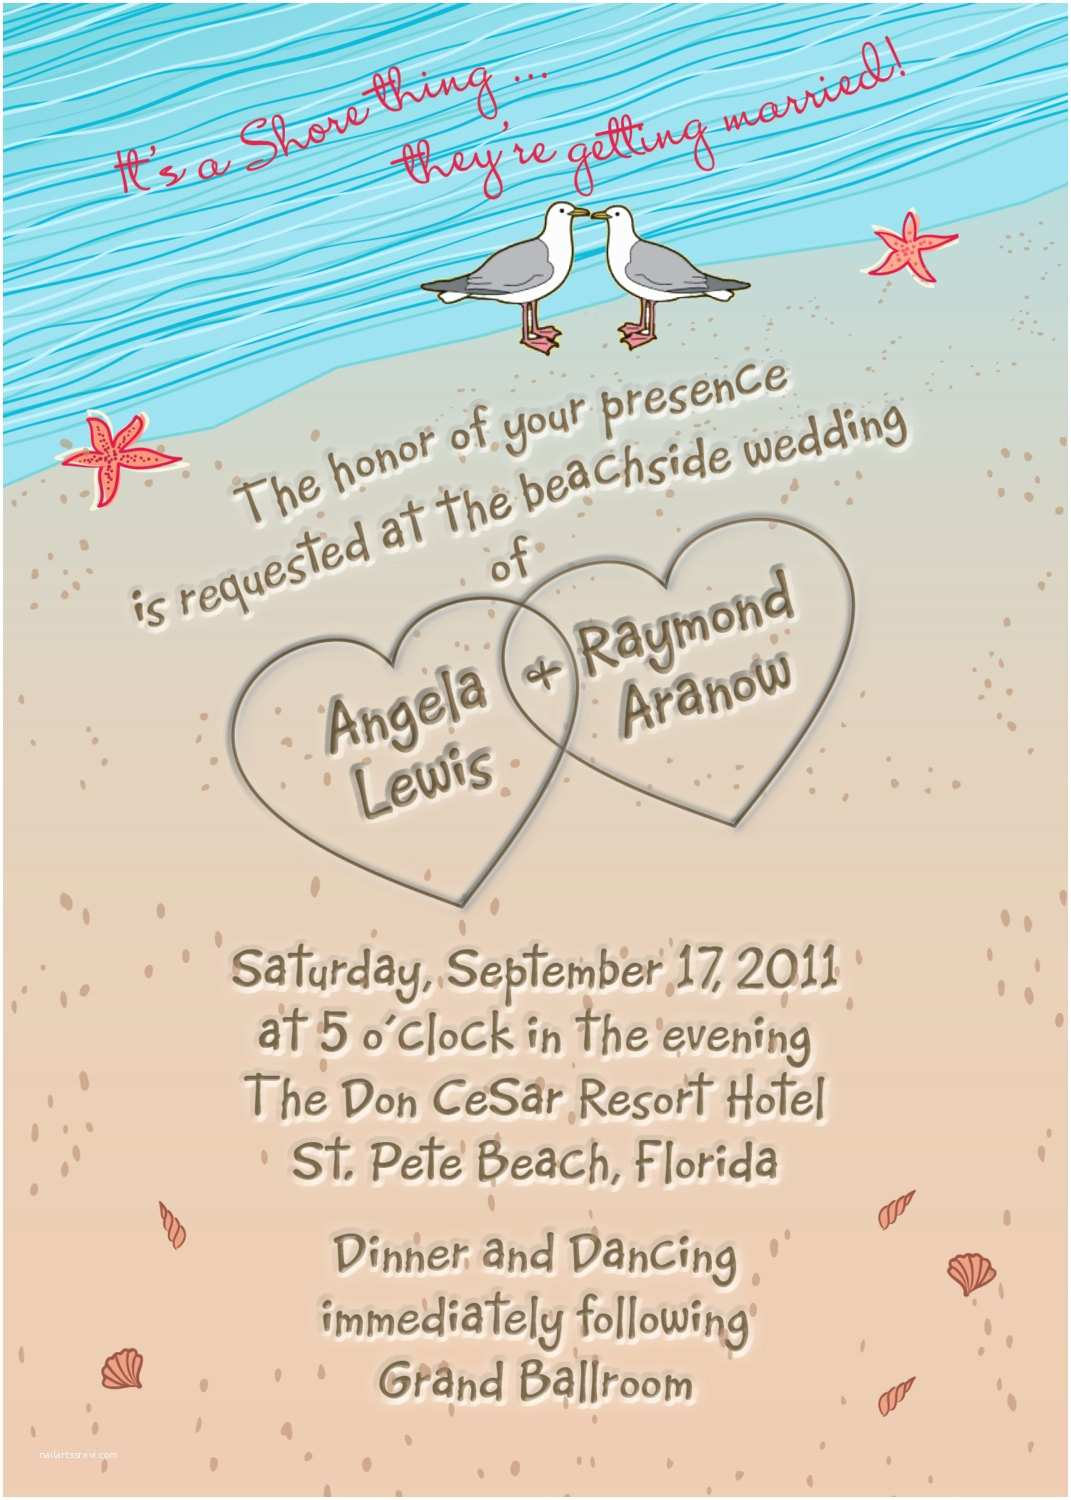 Beach Wedding Invitation Sample Beach Wedding Invitation with Hearts In Sand Seagulls and